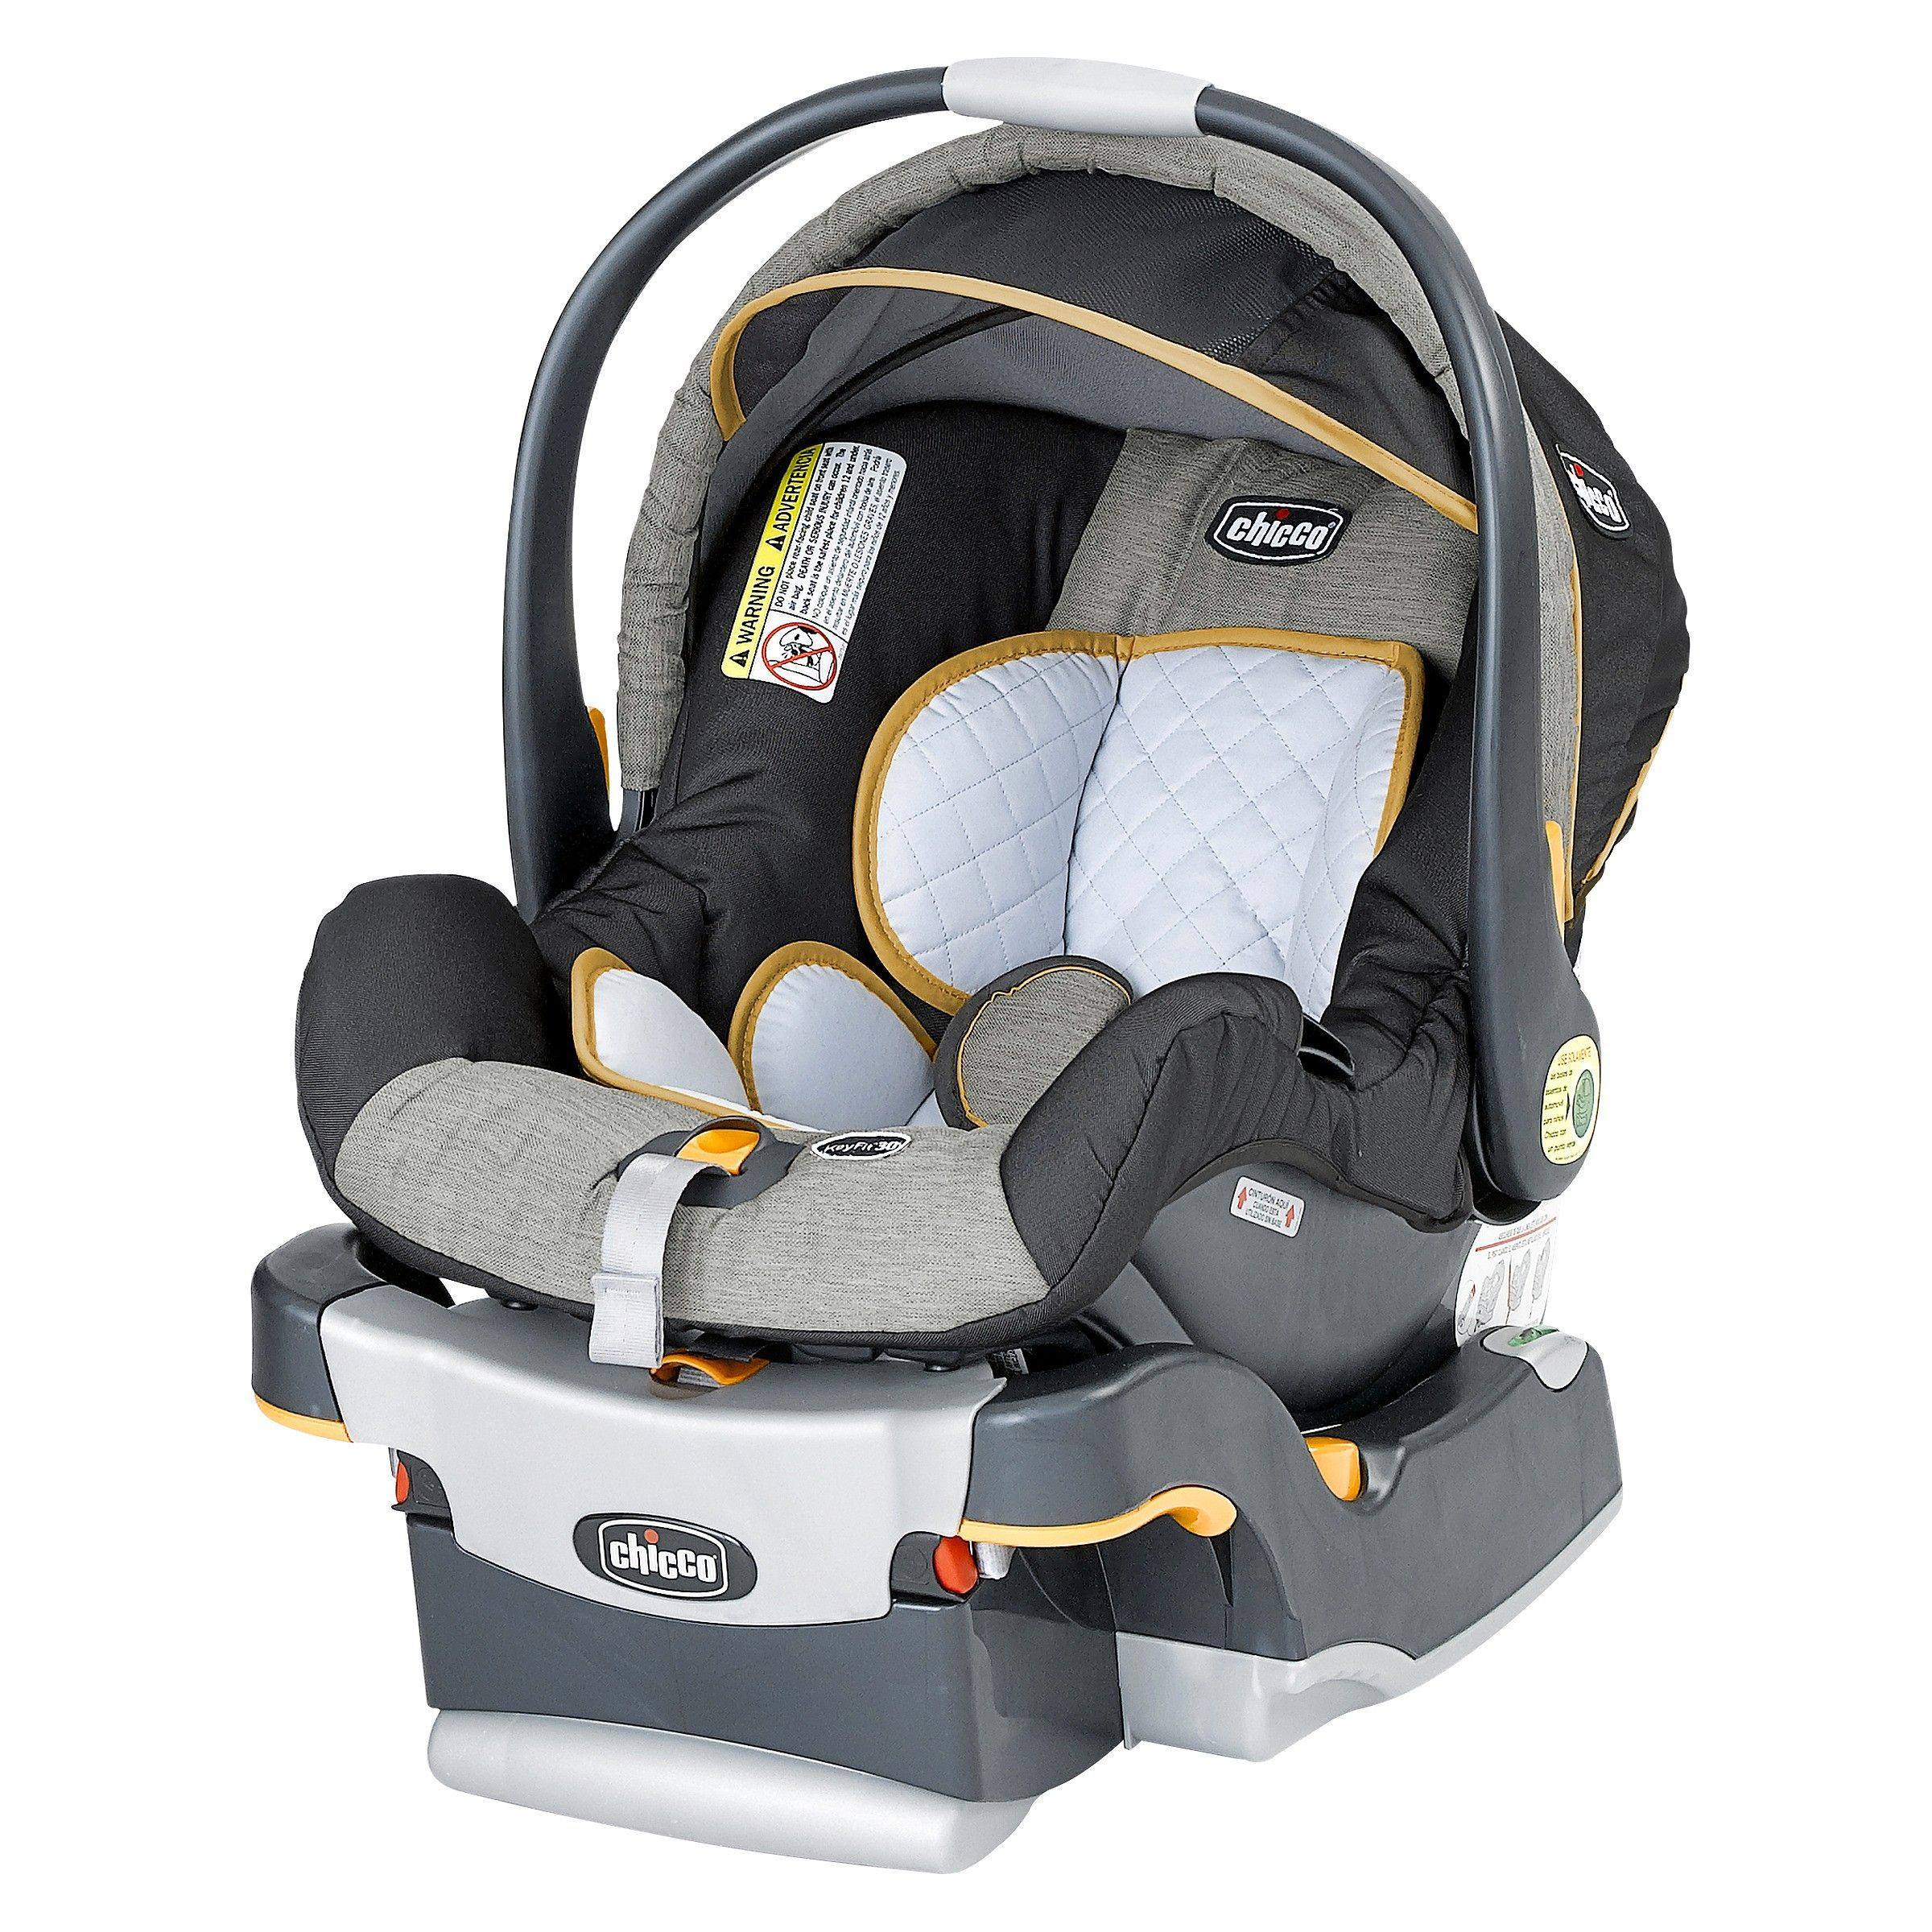 Baby Car Seats At Target Chicco Keyfit 30 Infant Car Seat Target Best Baby Car